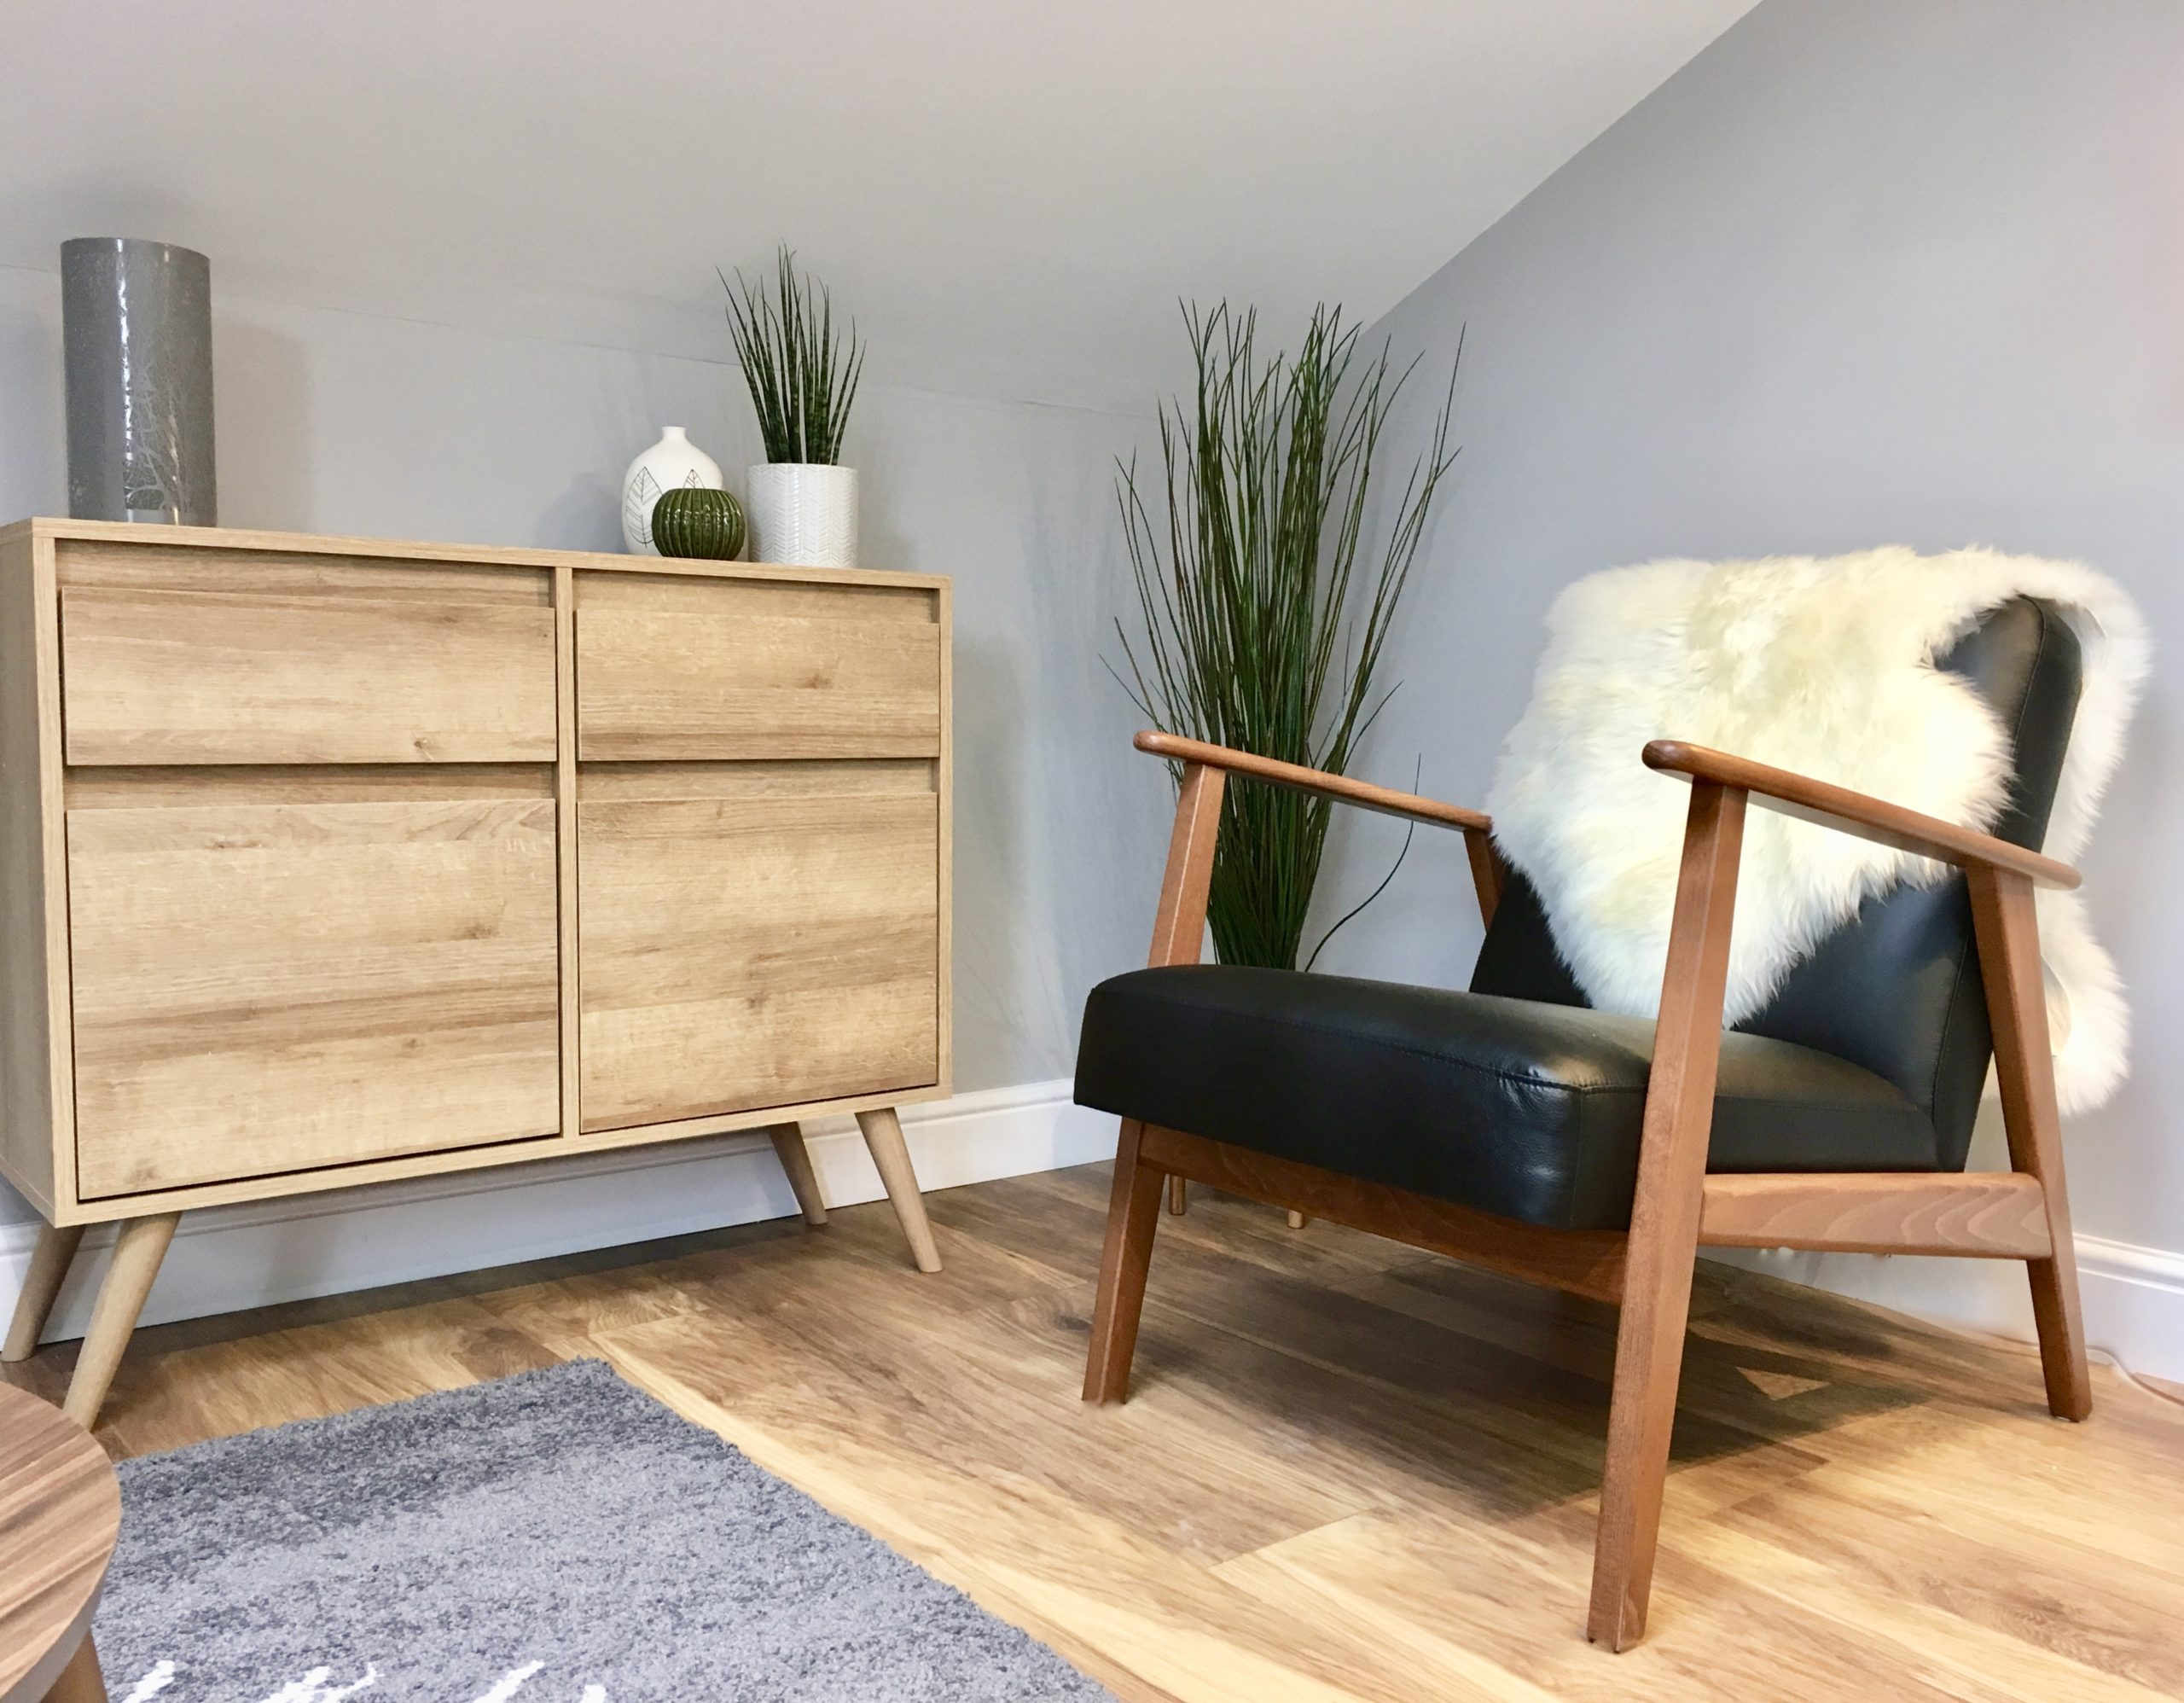 Danish style armchair with sheepskin rug and skandi style oak effect sideboard in show home designed by Amelia Wilson Interiors Ltd